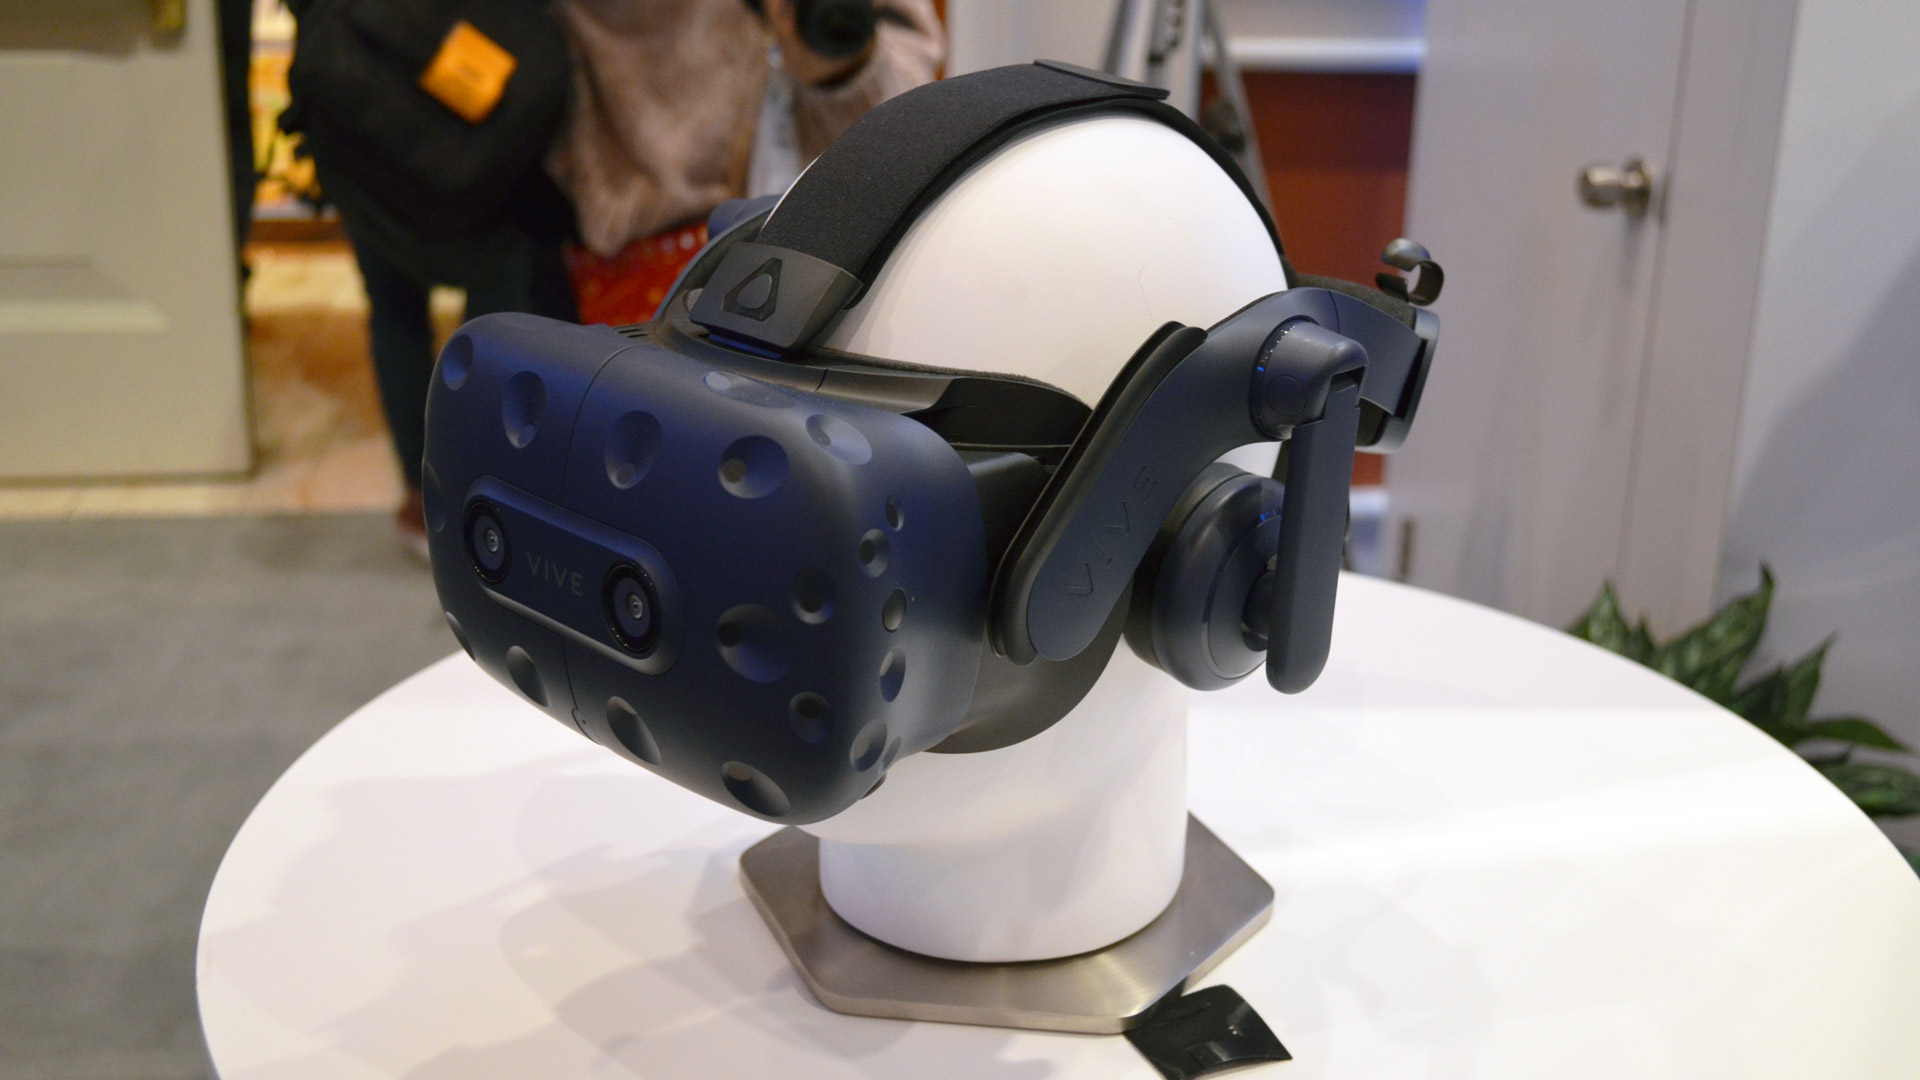 CES 2018 - Hands-on: The Vive Pro is Much More Than an Improved Screen